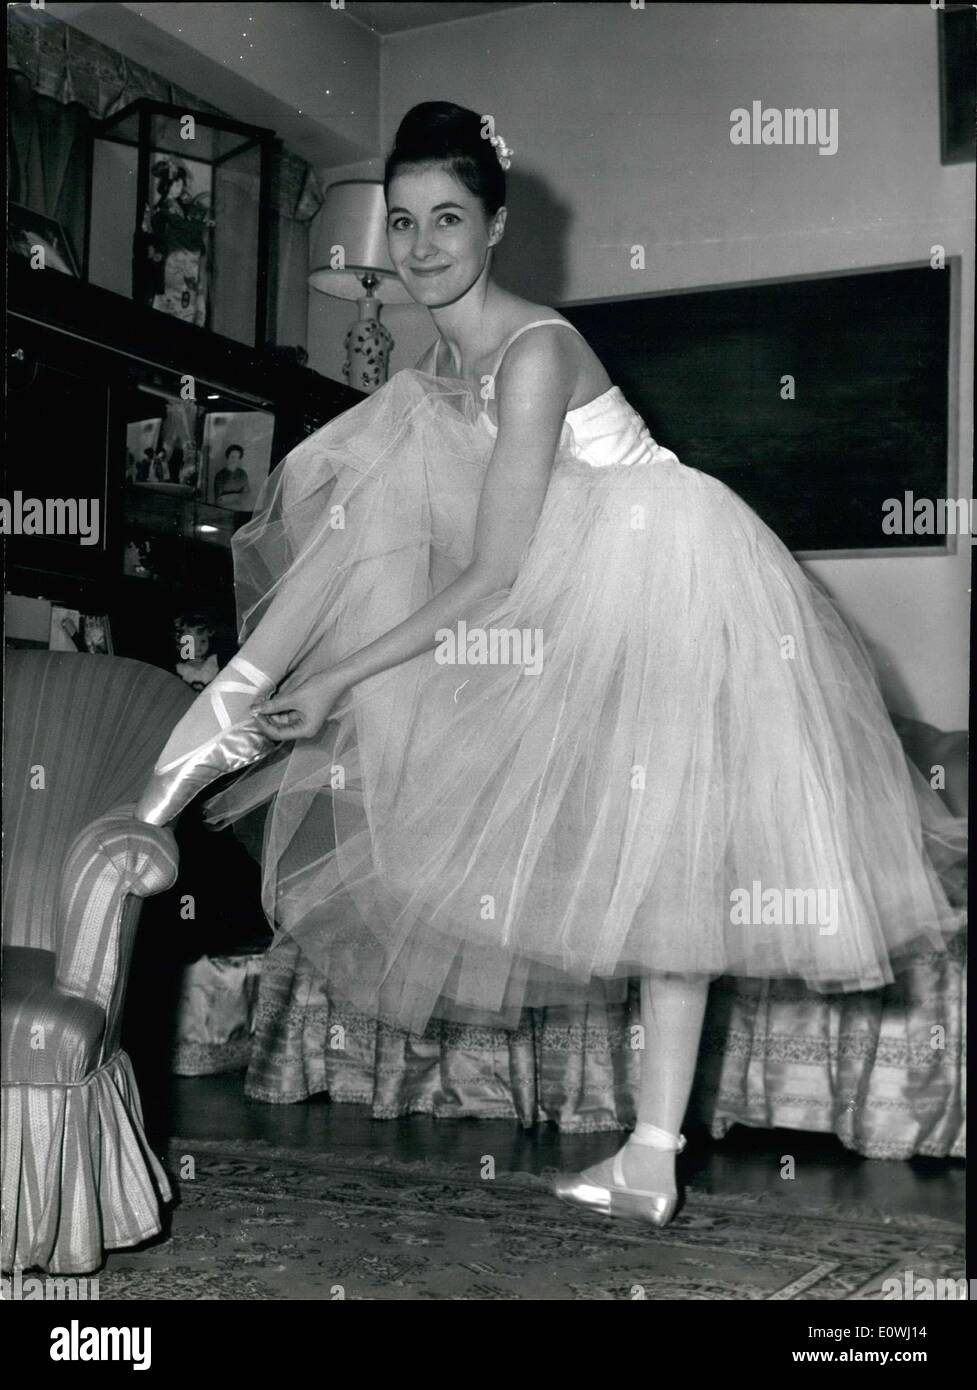 Mar. 02, 1963 - Noella Pontois Paris Opera's Star Dancer - Stock Image